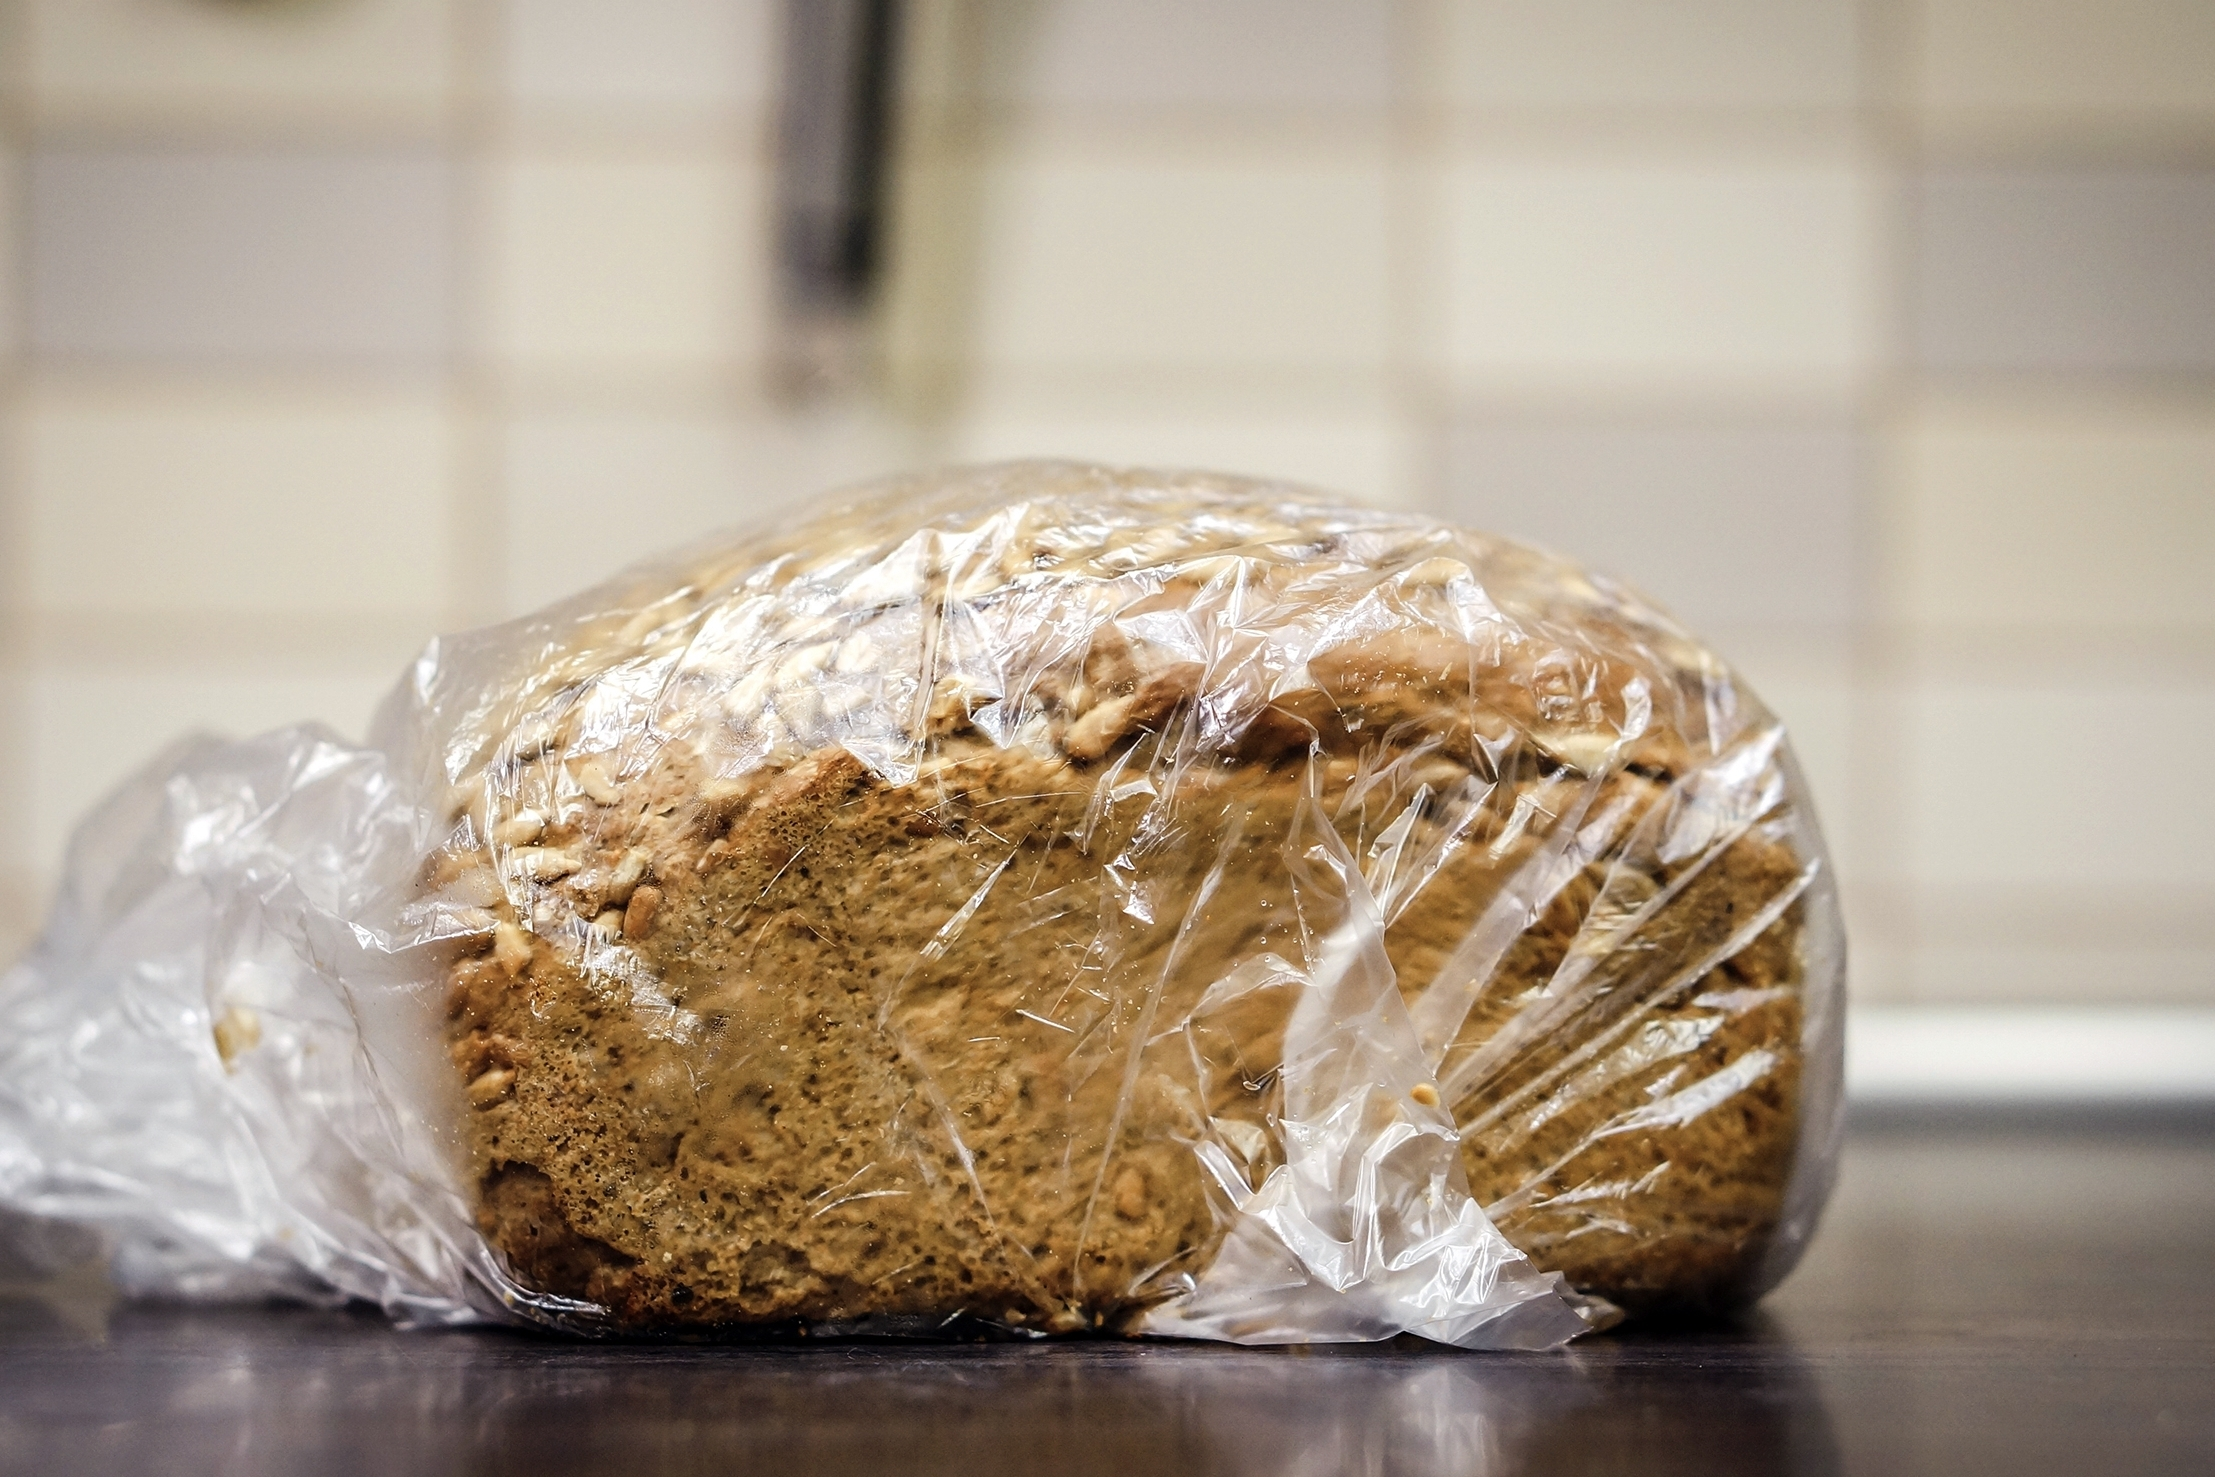 WHEN FREEZING BREAD, MAKE SURE IT IS WELL WRAPPED: We recommend either double wrapping it with plastic, or tightly wrapping it in plastic and placing it inside of a Freezer storage bag. -